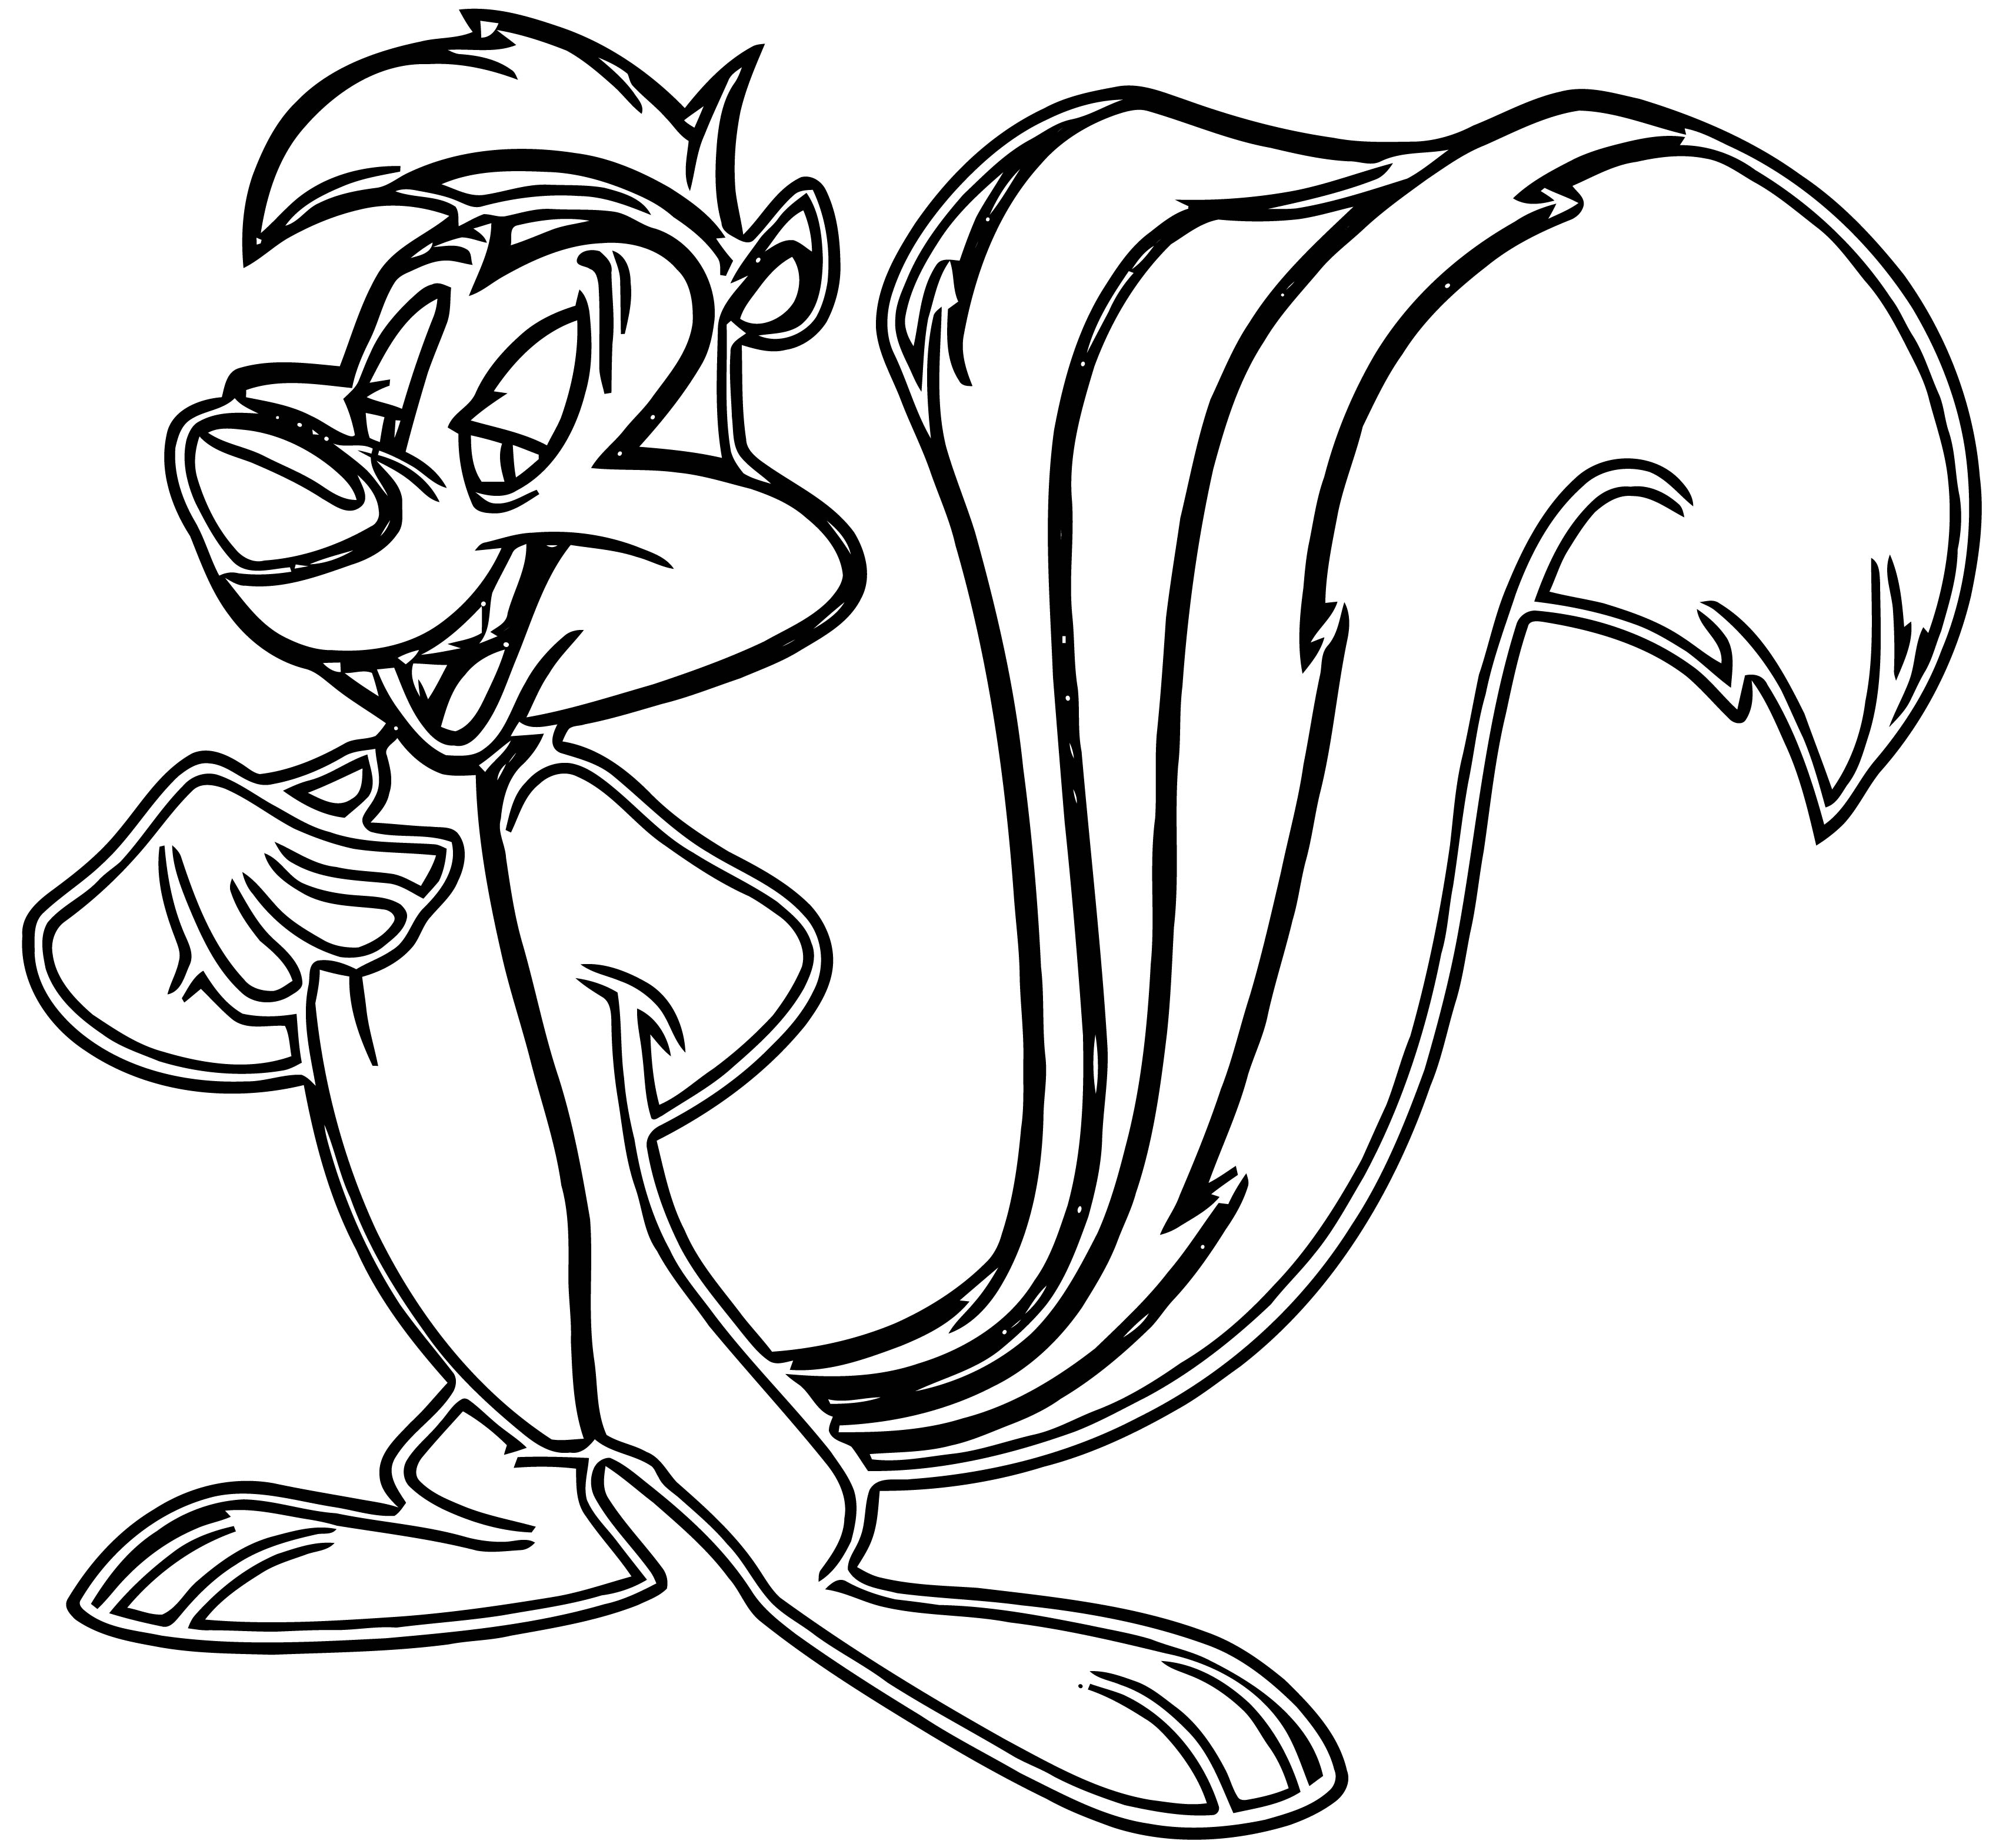 coloring pages of pepe le pew | Pepe Le Pew The Looney Tunes Show The Looney Tunes Show ...